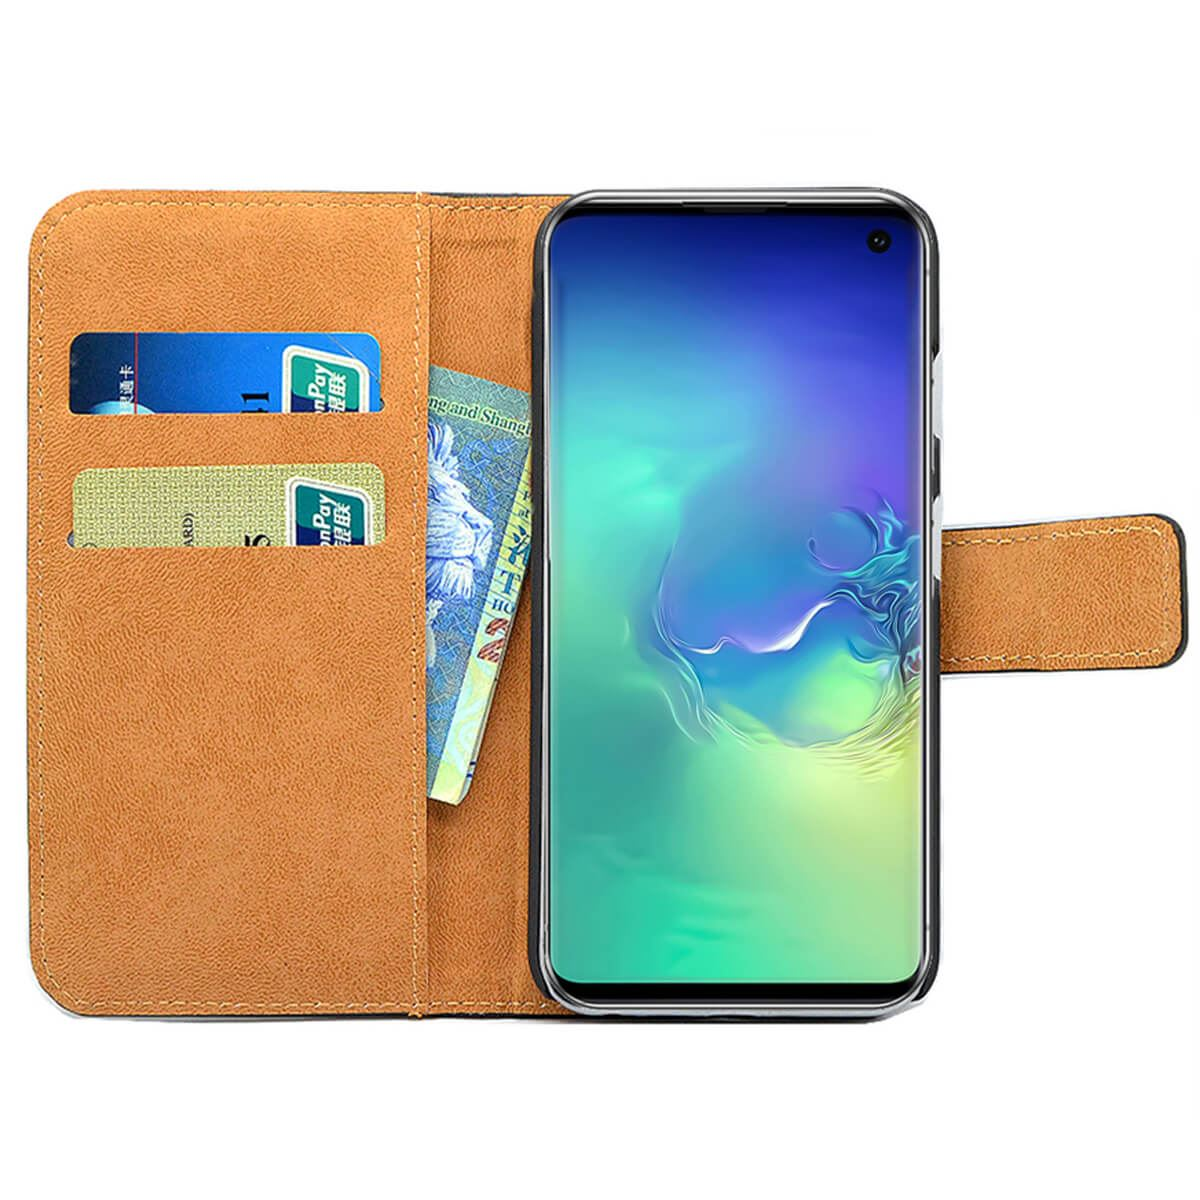 Magnetic-Flip-Wallet-Case-For-Samsung-Galaxy-S10-Plus-S9-S8-A50-Leather-Cover thumbnail 3